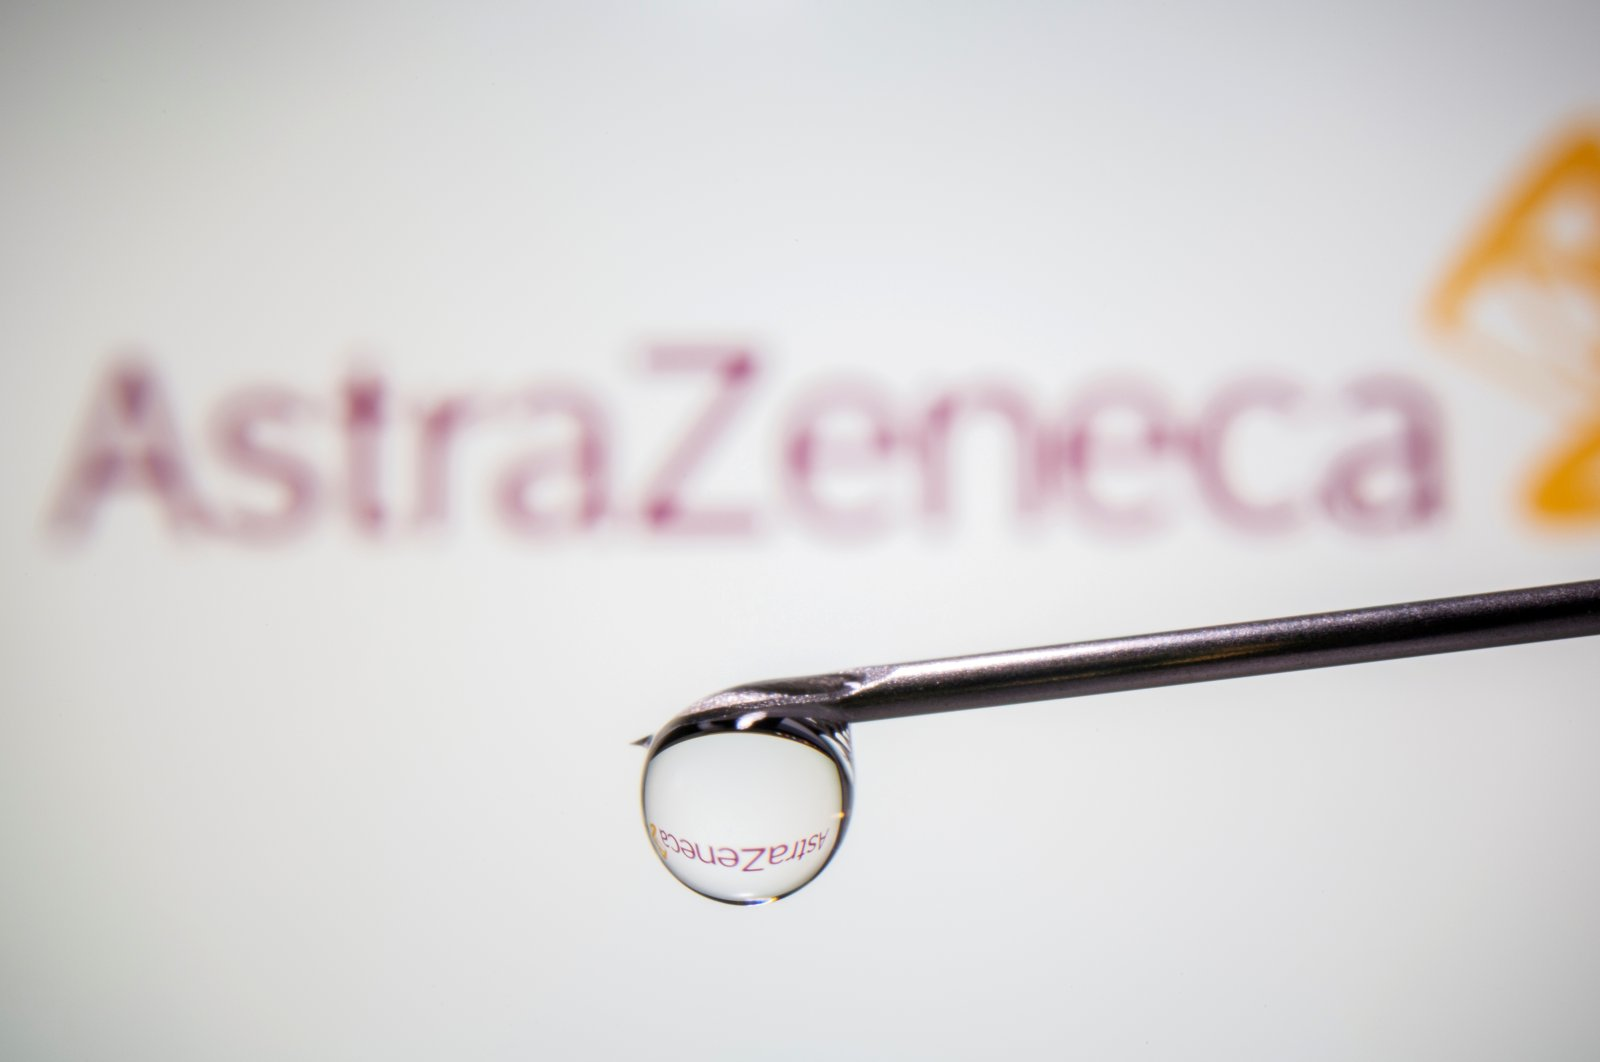 AstraZeneca's logo is reflected in a drop on a syringe needle in this illustration taken Nov. 9, 2020. (Reuters Photo)